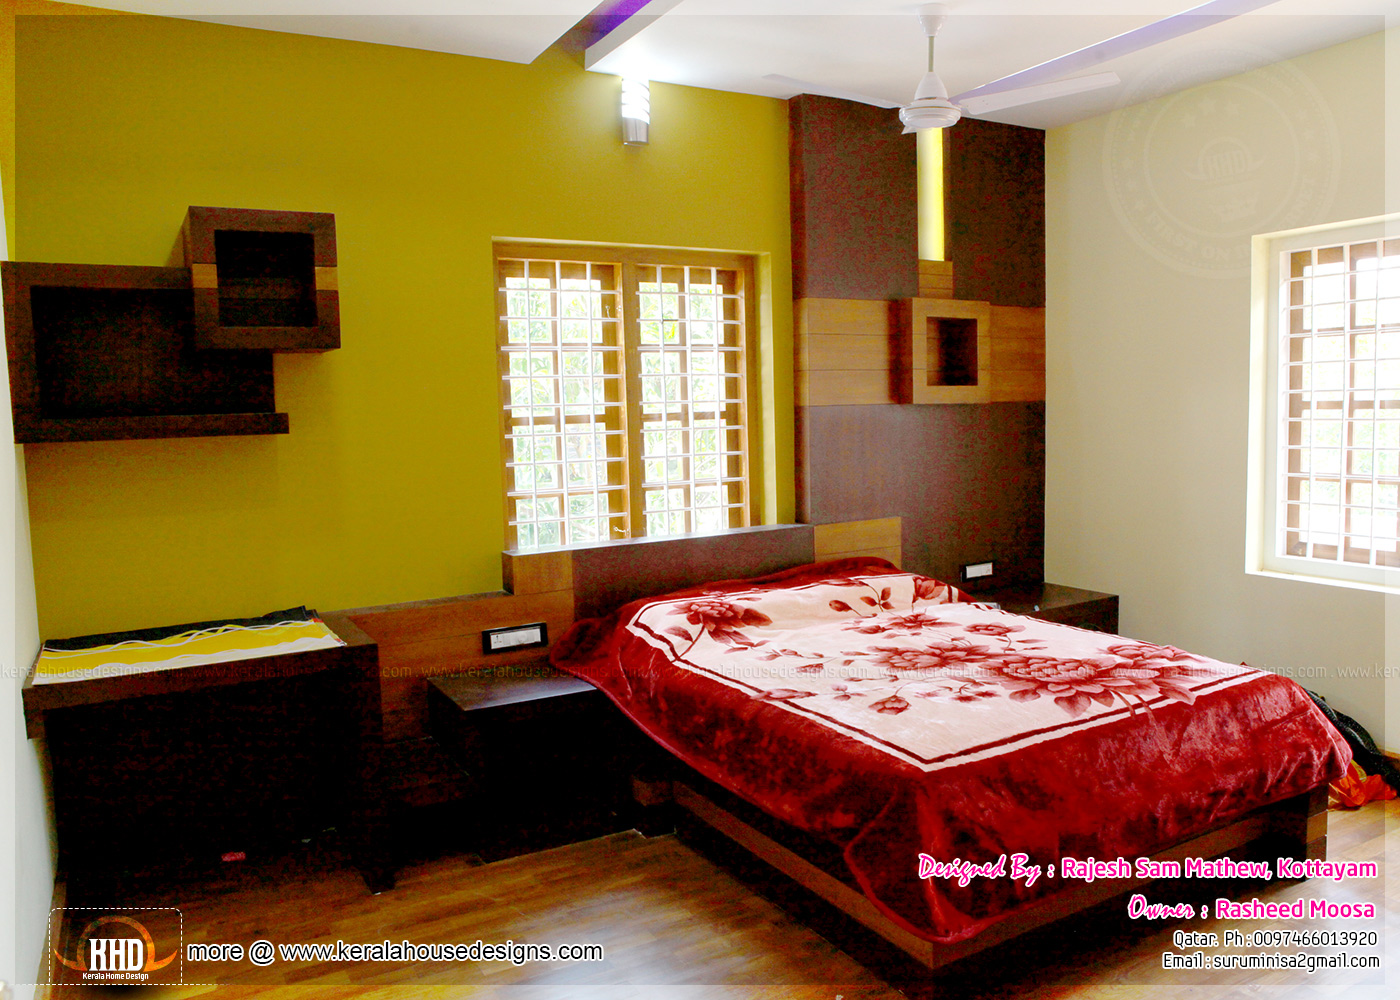 Kerala interior design with photos kerala home design for Indian small house design 2 bedroom